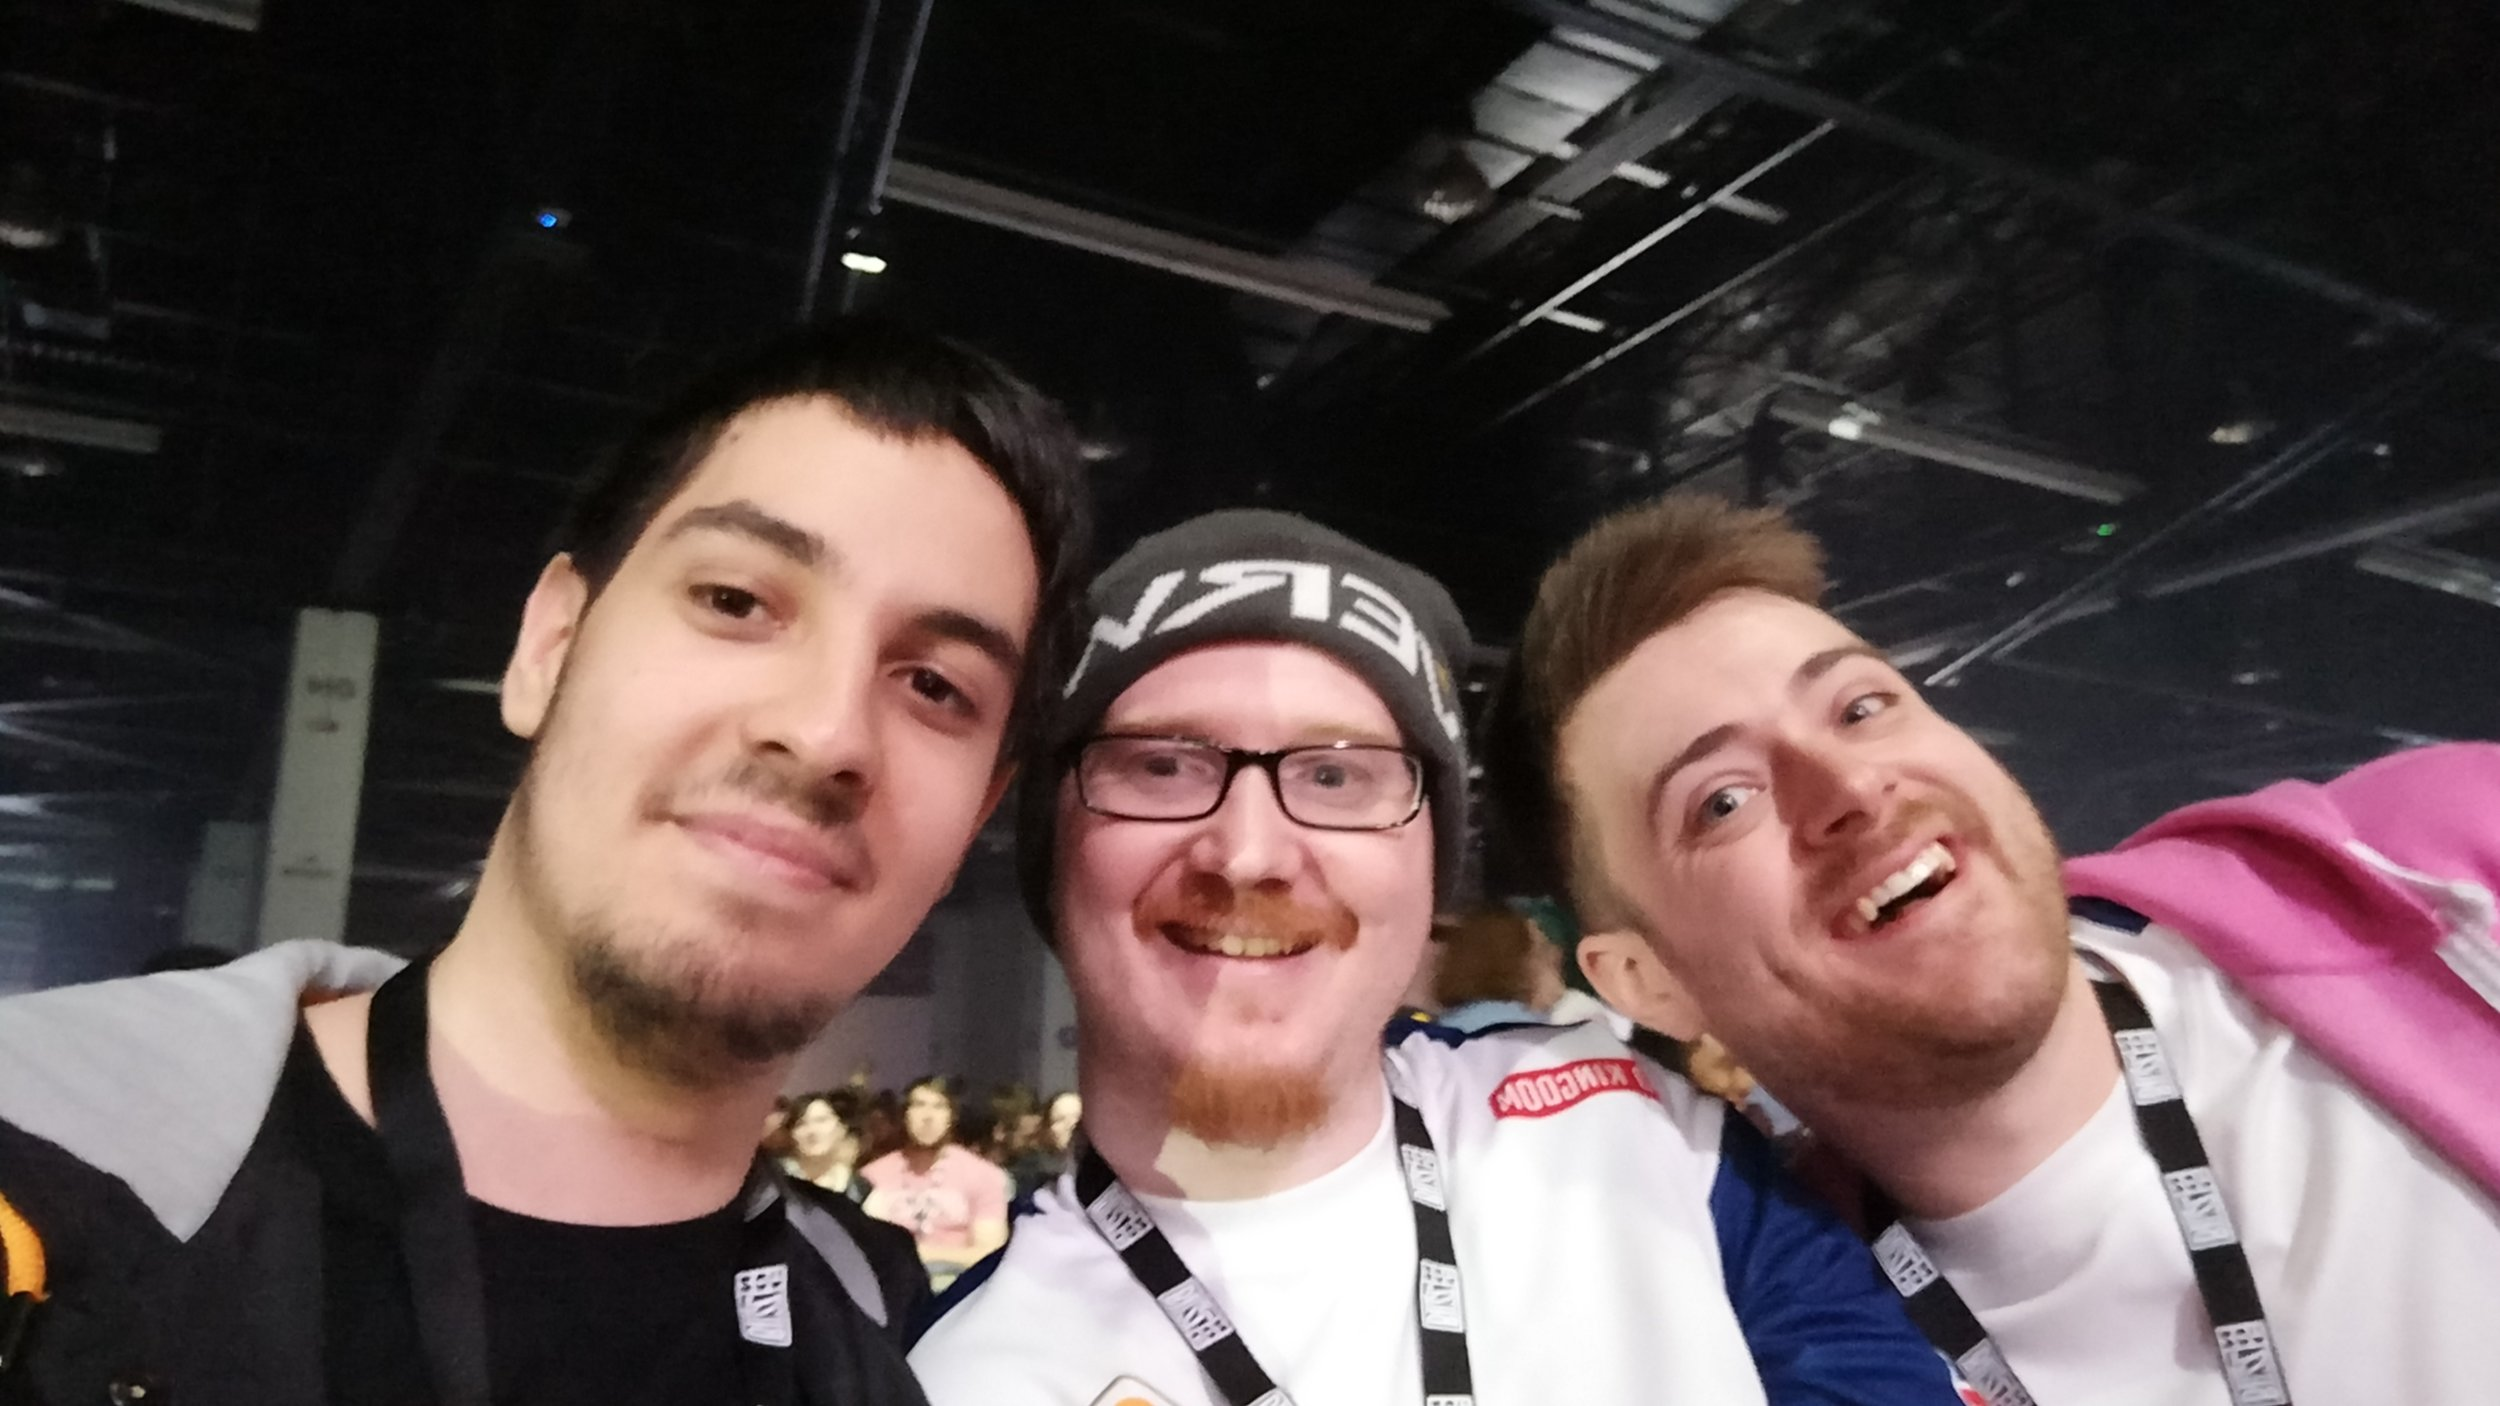 ioStux, OneAmongstMany (Talented Overwatch Analyst and Caster/Coach), Stylosa/Unitlost (British Overwatch Content Creator covering E-Sports, Game and Community Updates, works with the London Spitfires OWL Team)